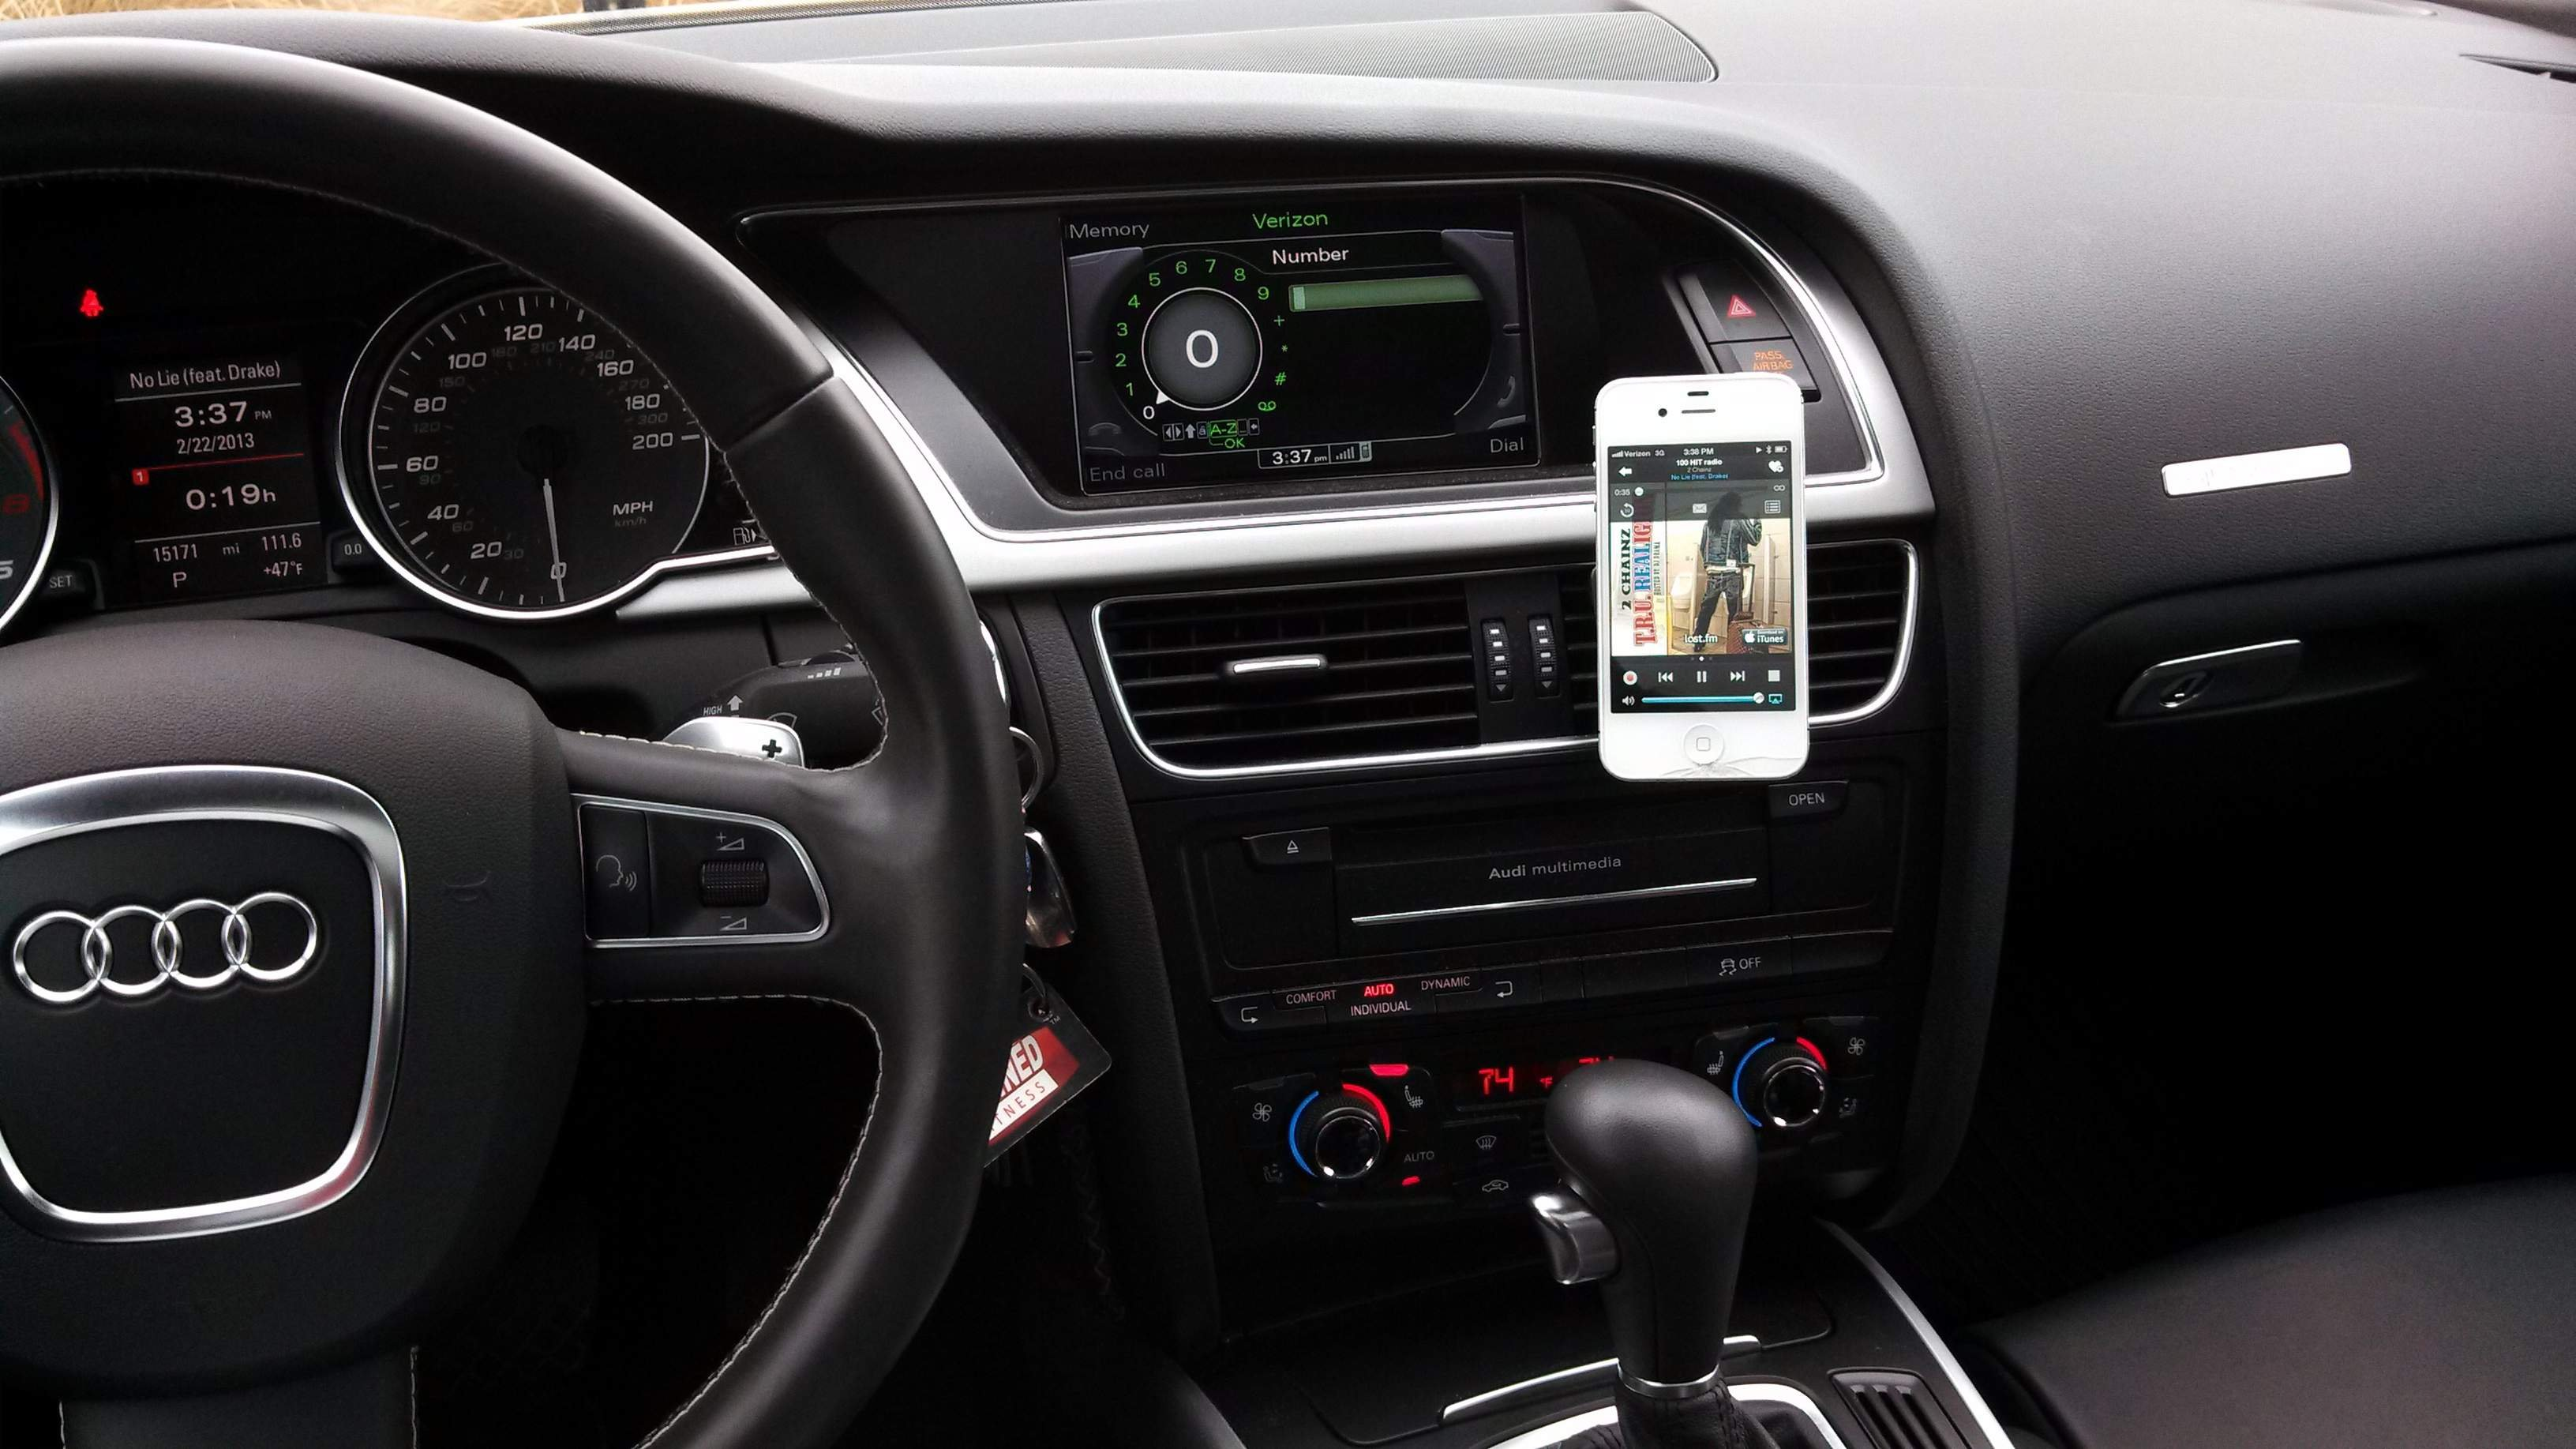 Show Us Your Phone Mount AMI Reroute Audi A Forum Audi S Forum - Audi iphone 6 car mount